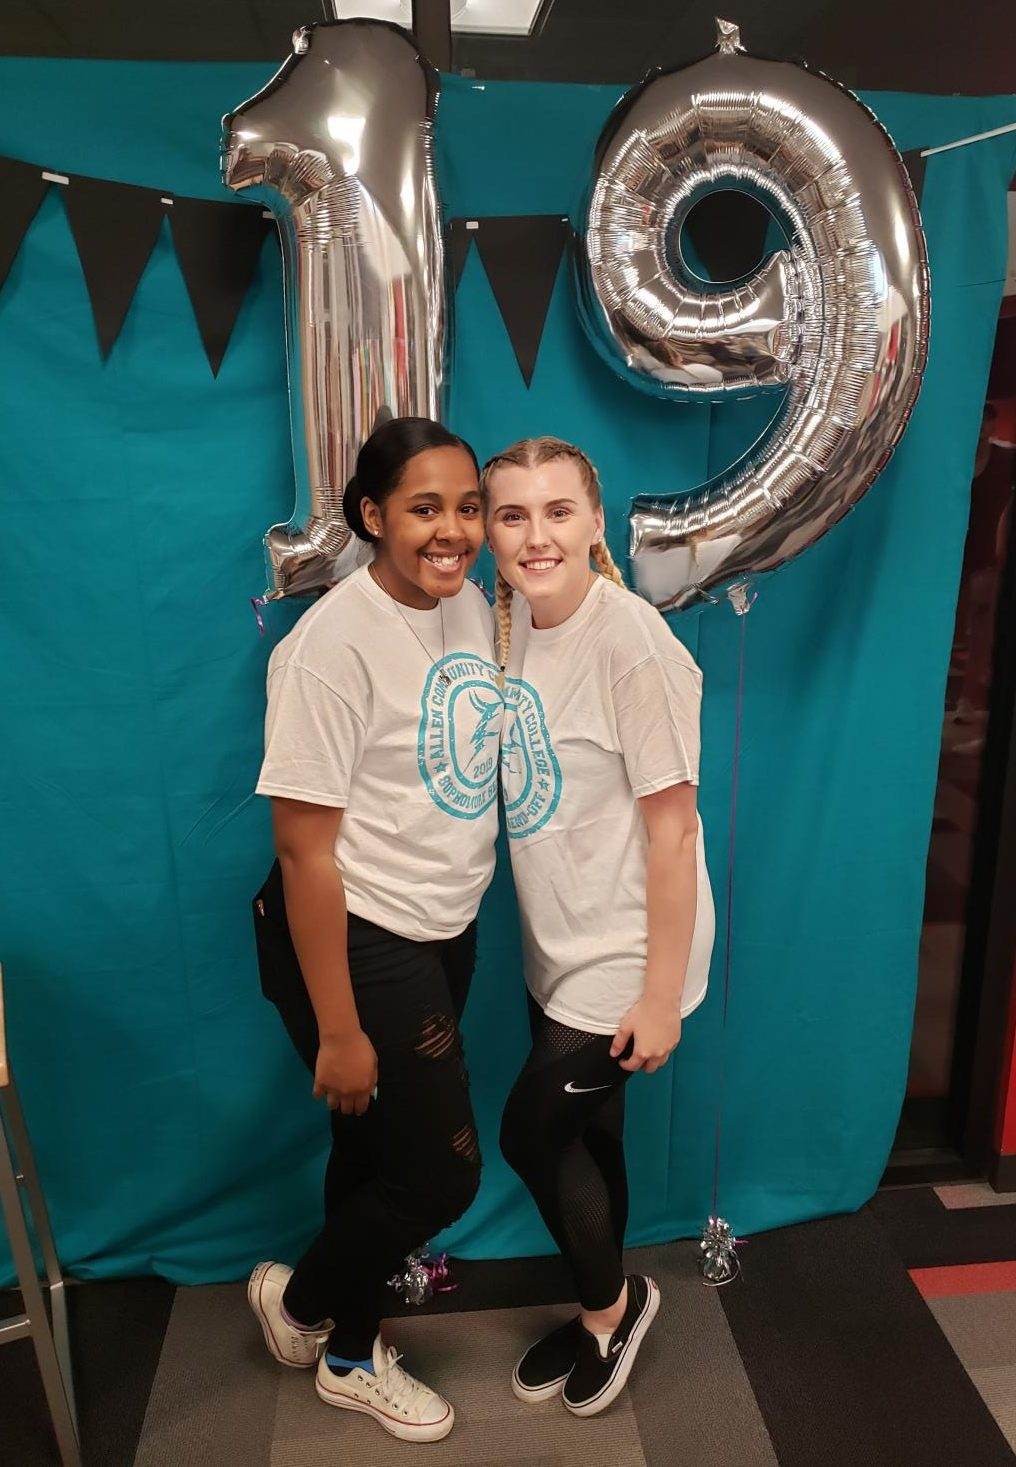 Whitney+Mayberry%2C+who+celebrated+her+19th+birthday+at+the+Sophomore+Send-Off%2C+and+DeAnna+McFadden+posed+for+a+picture+sporting+their+event+shirts%21